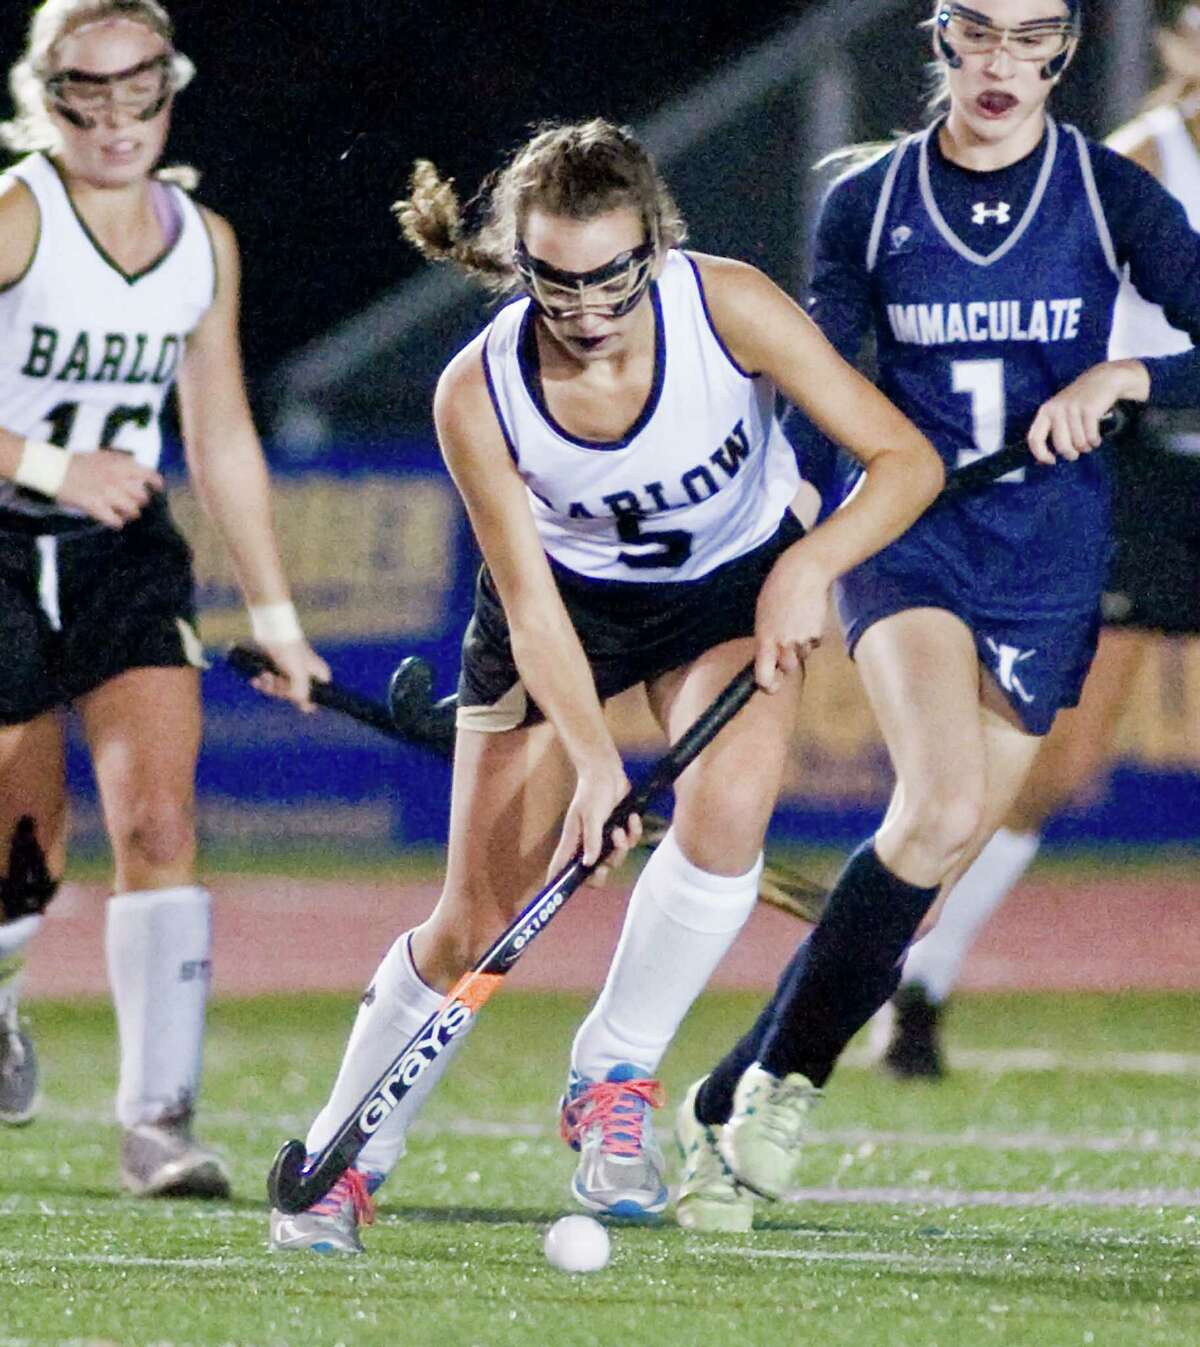 Joel Barlow High School's Gloria Davey pushes the ball in the SWC field hockey championship game against Immaculate High School, played at Brookfield High School. Wednesday, Nov. 4, 2015